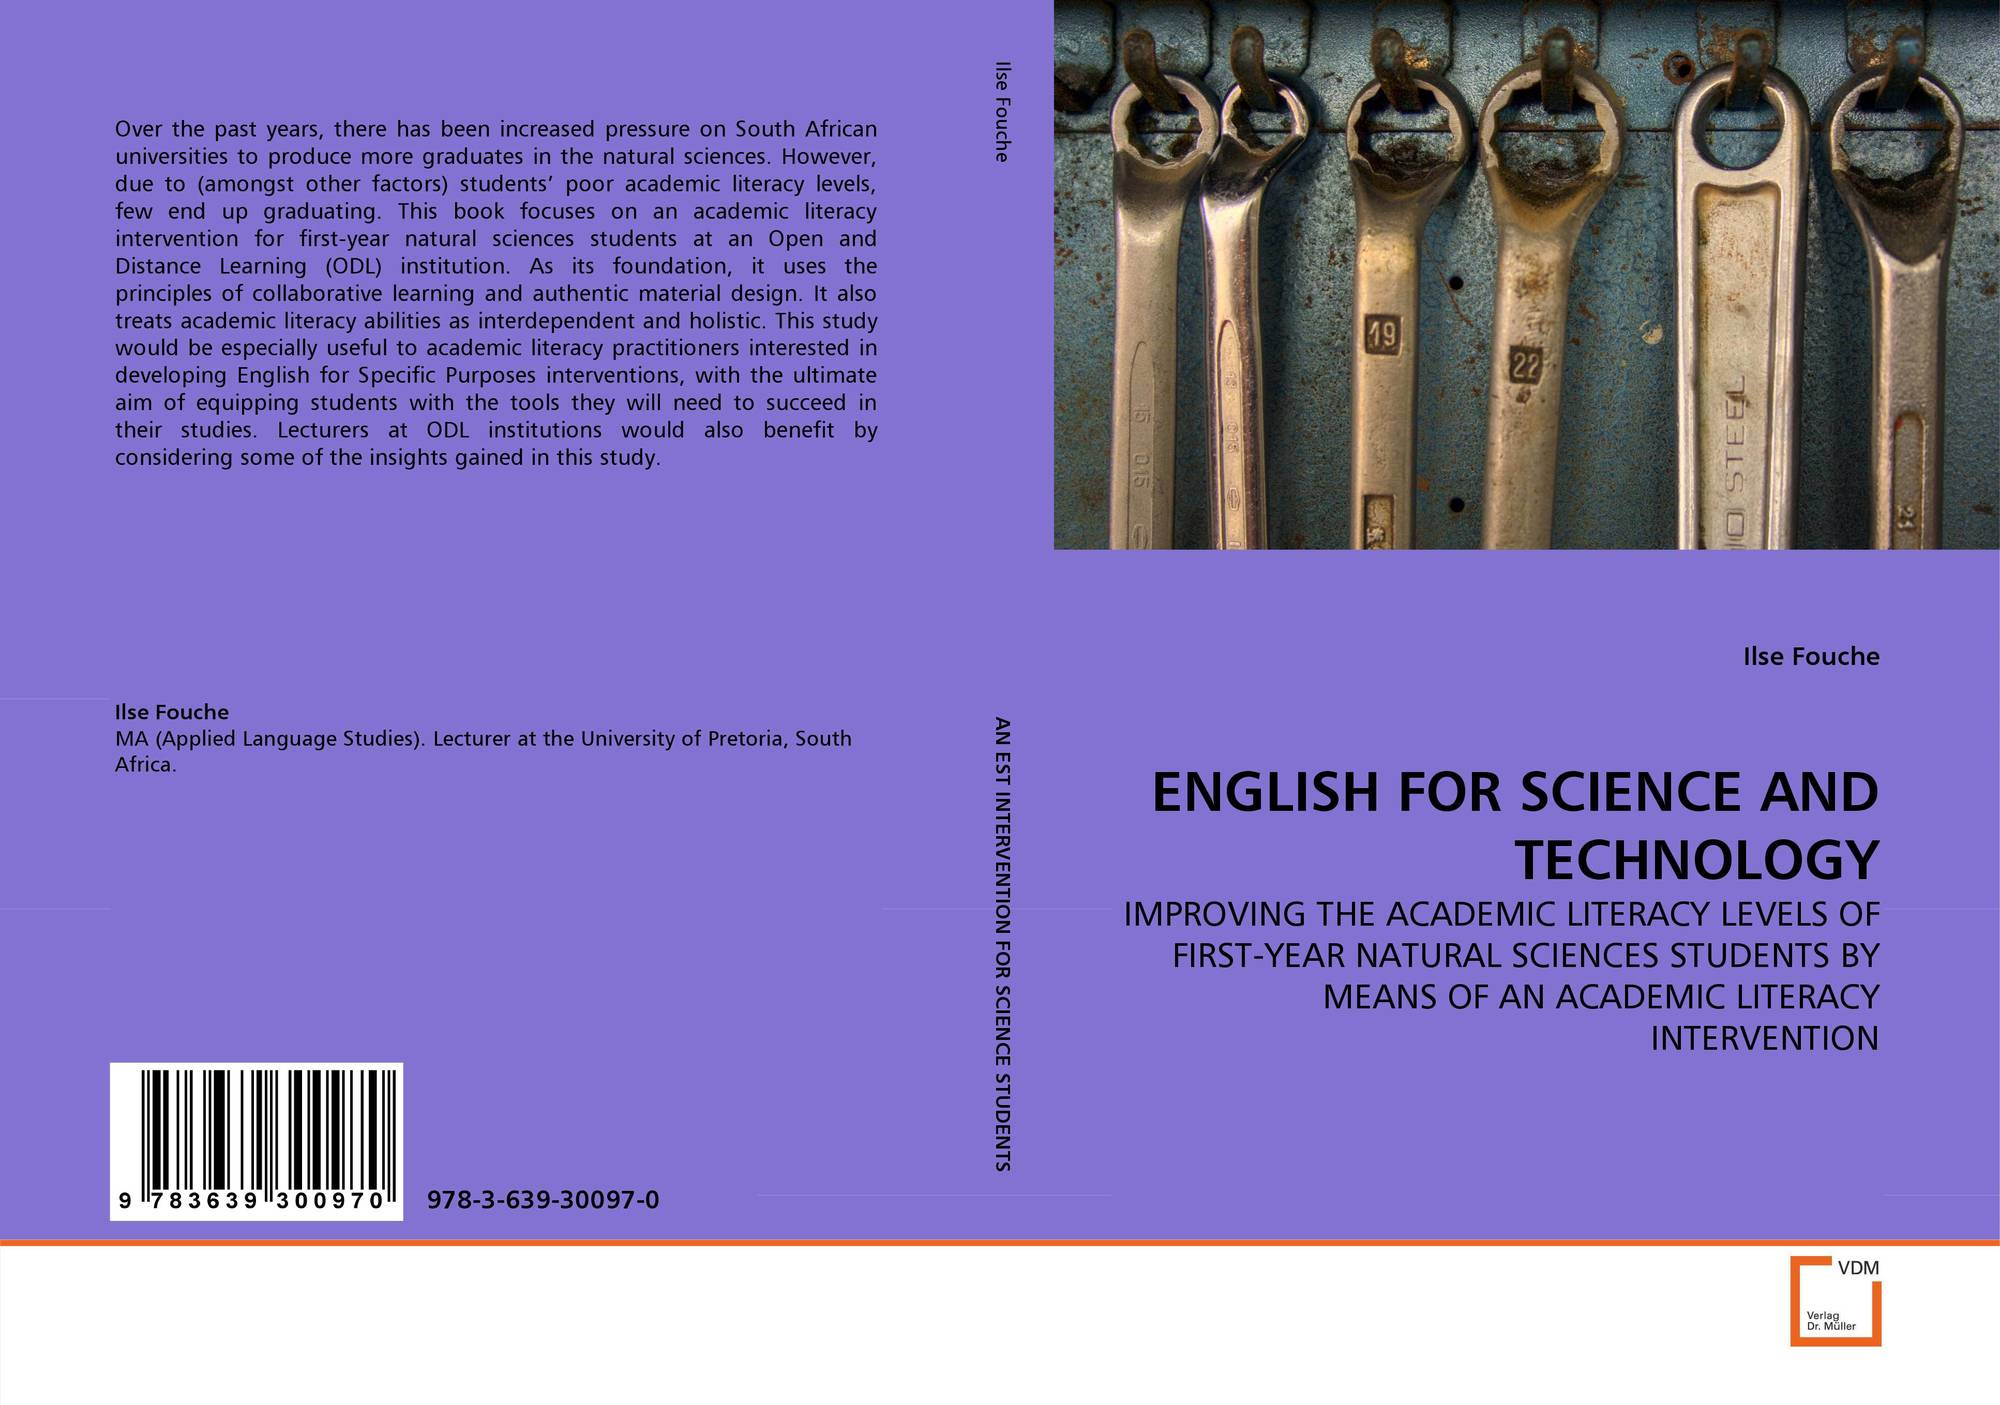 english for science and technology For anyone interested in english for science and technology: i took a look on the web for practice exercises and related material here are some sites you may find helpful: interactive est exam preparatory exercises from universiti kebangsaan malaysia including reading passages, skills and.